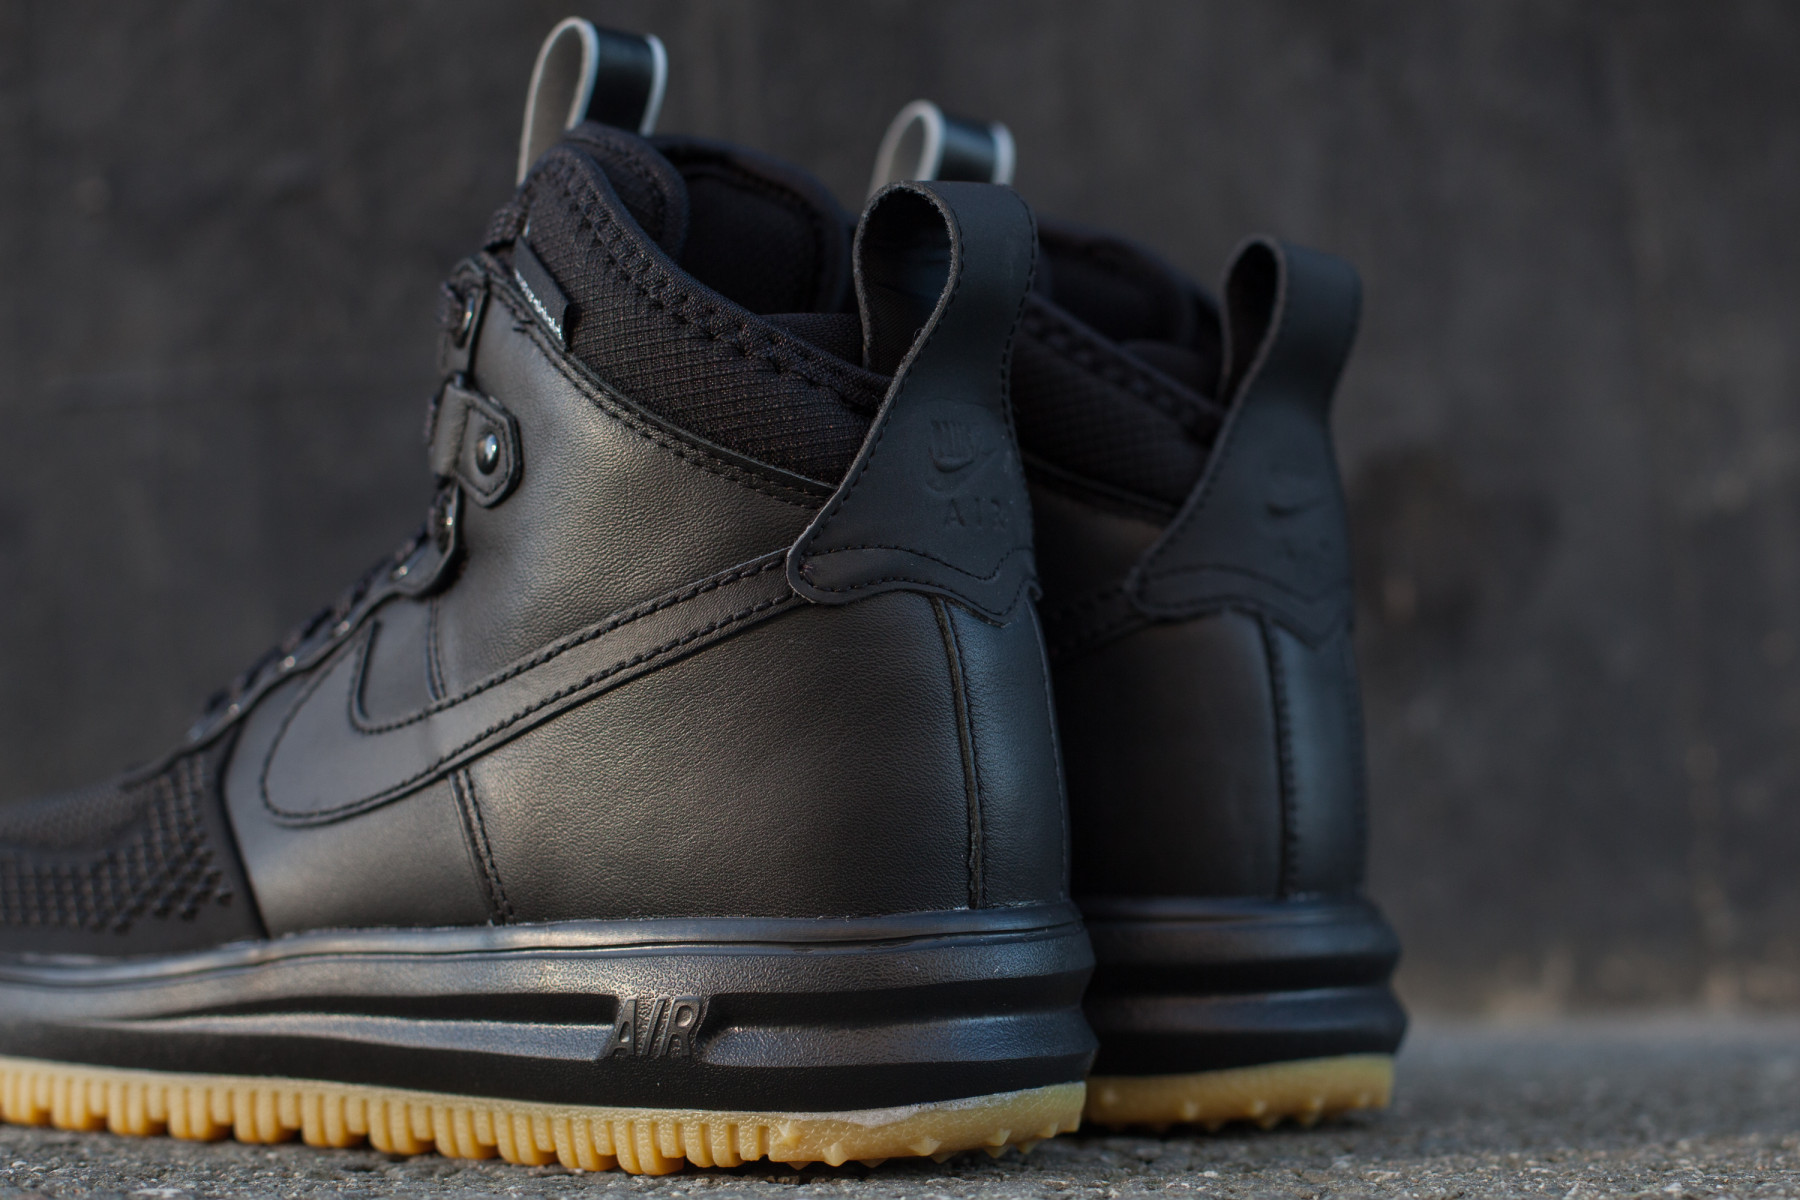 Nike Lunar Force 1 Duckboot Black Where To Buy 805899